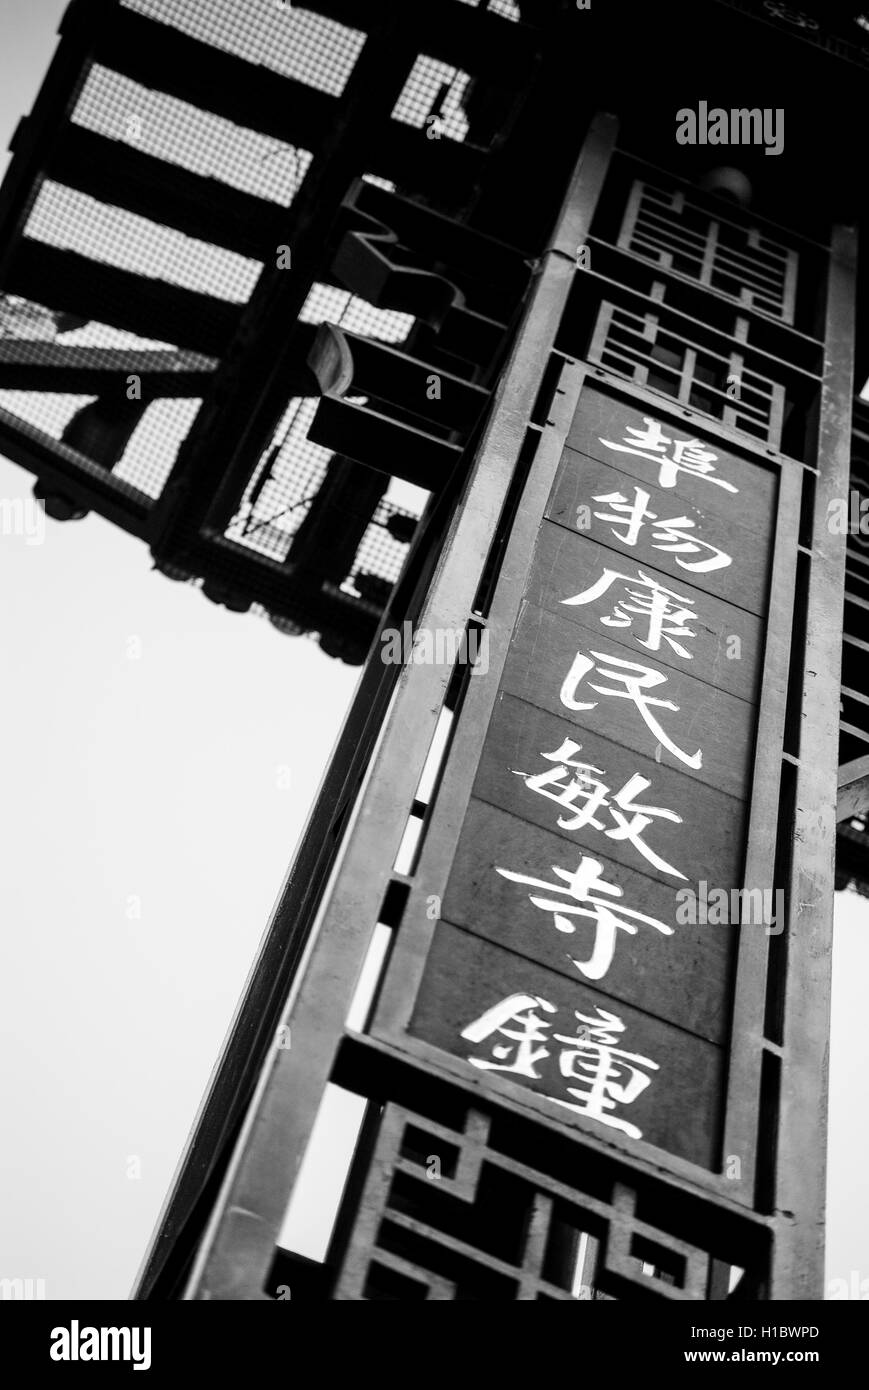 LONDON, UK - DECEMBER 13, 2014: part of the famous Chinatown gates in Soho, London, UK, photographed on December - Stock Image